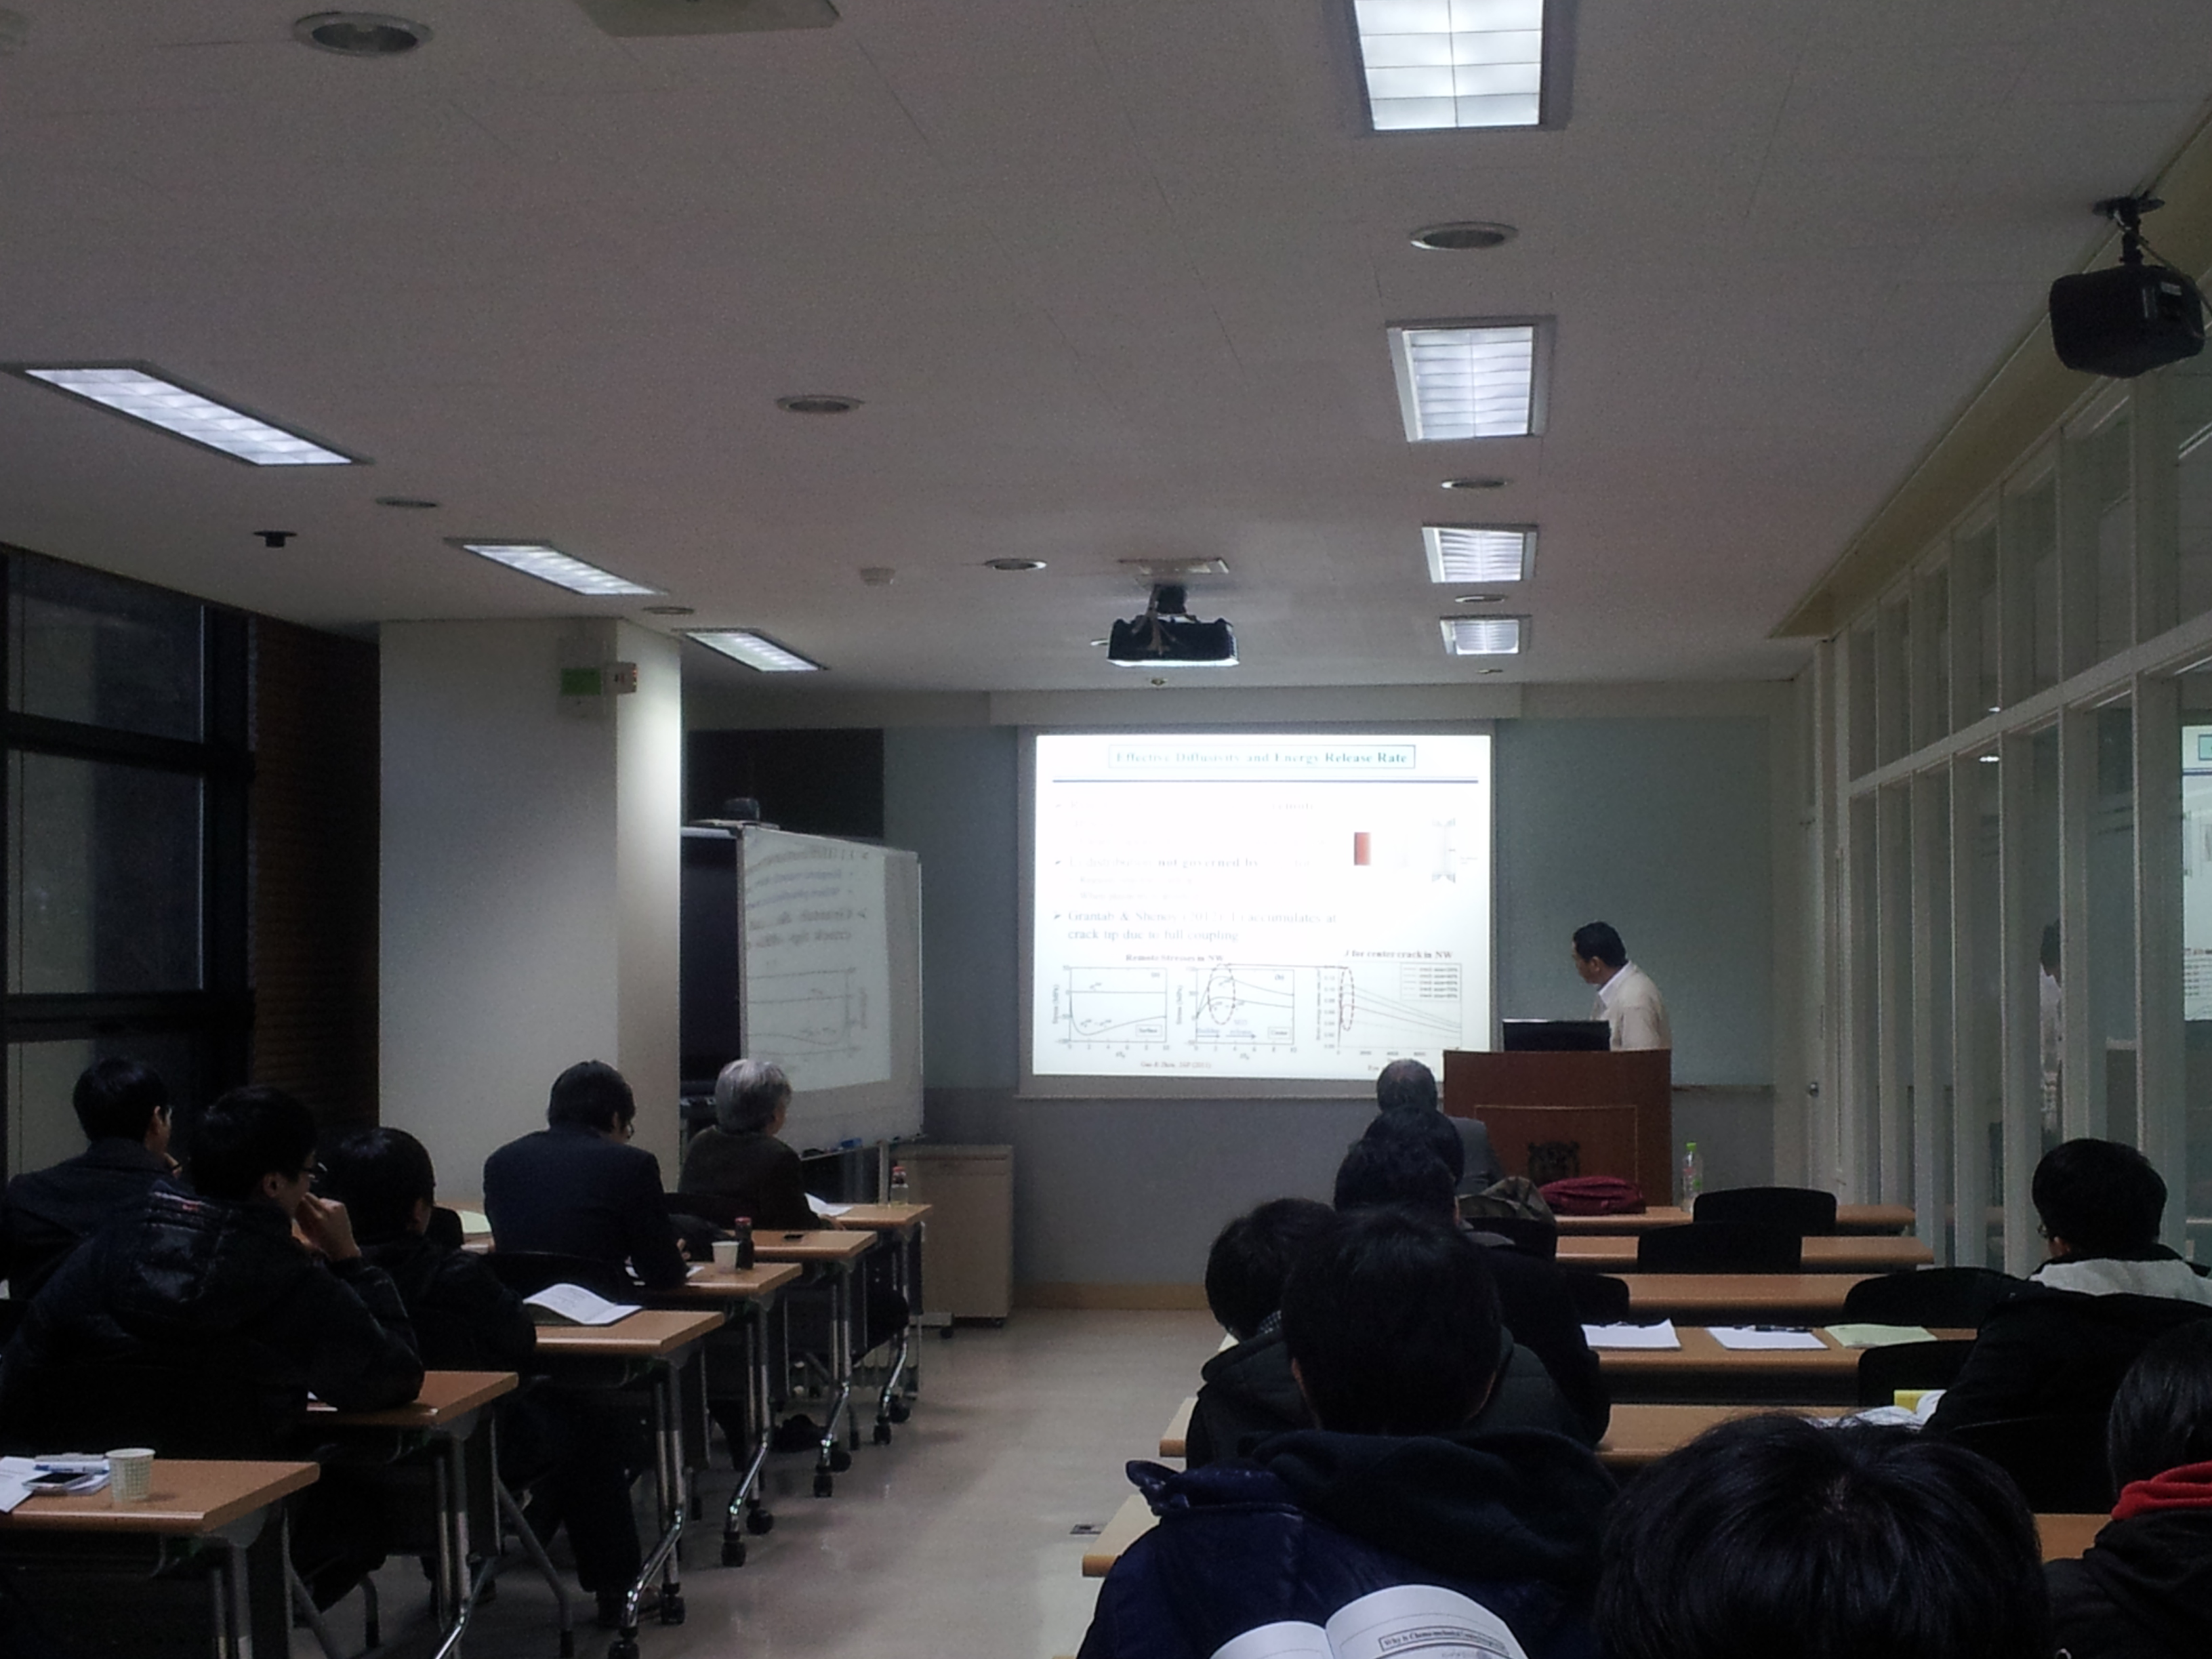 [4th WCU Workshop] ' Multiscale Analysis and Design'